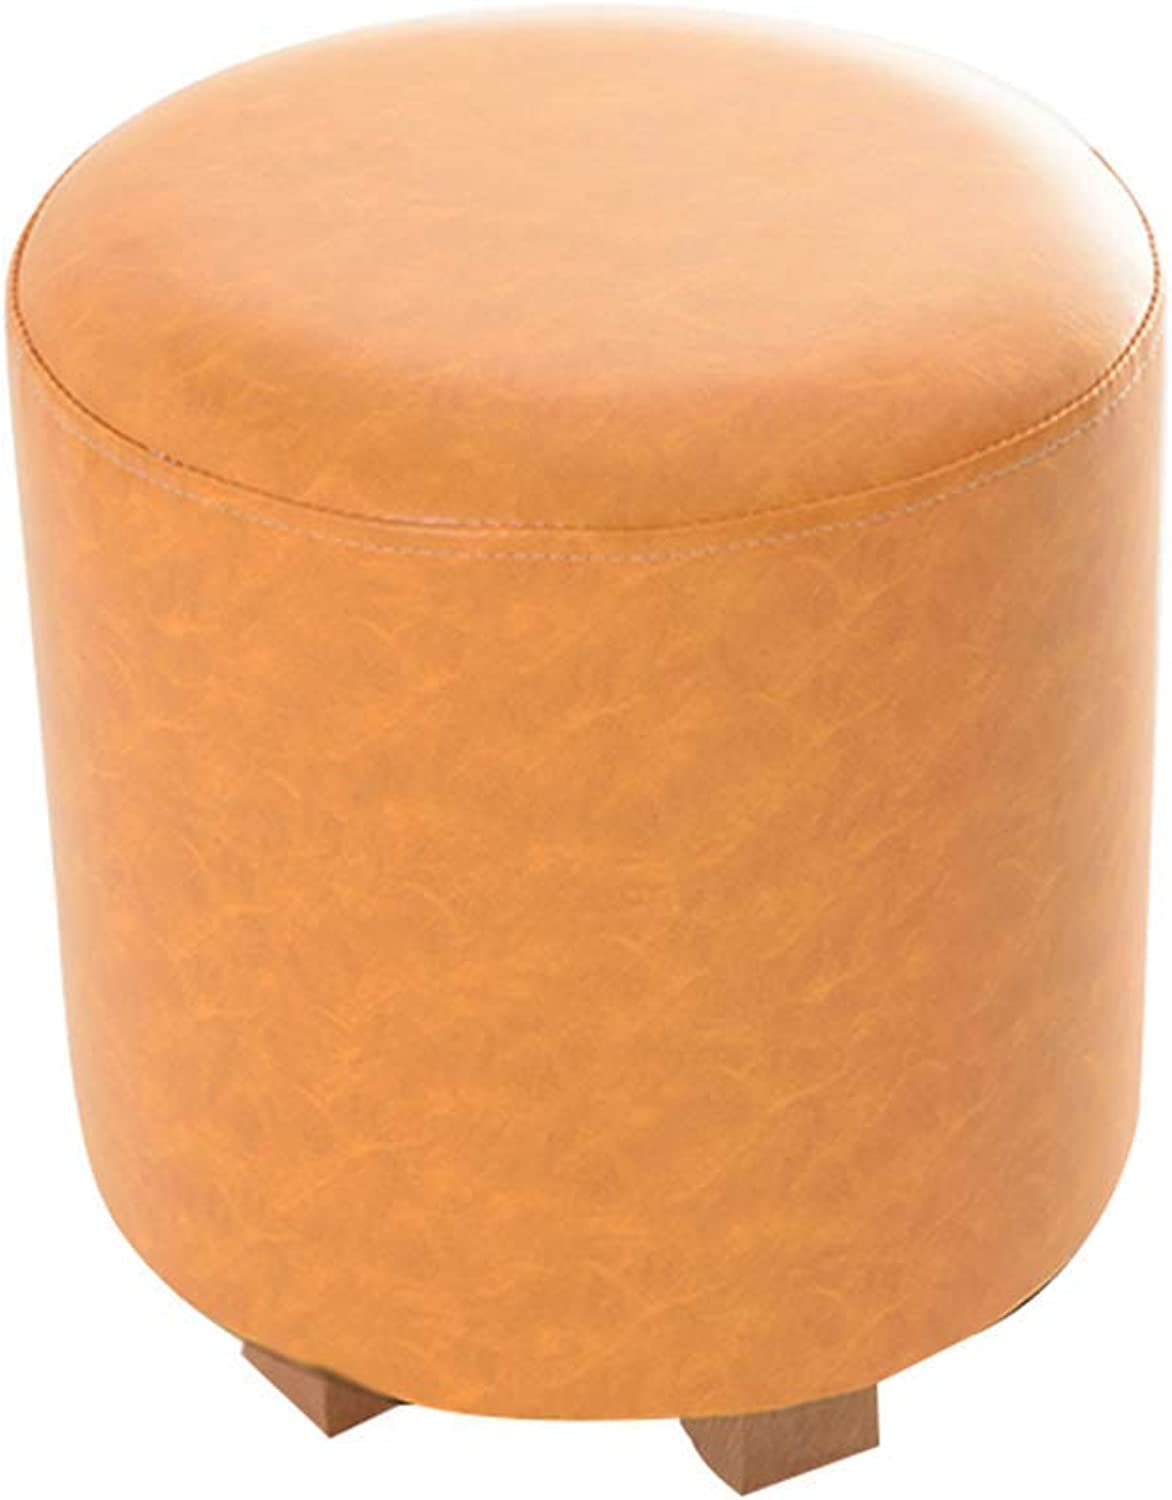 Round orange Footstool with Wood Faux Leather for Living Room and Bedroom 31 X 30